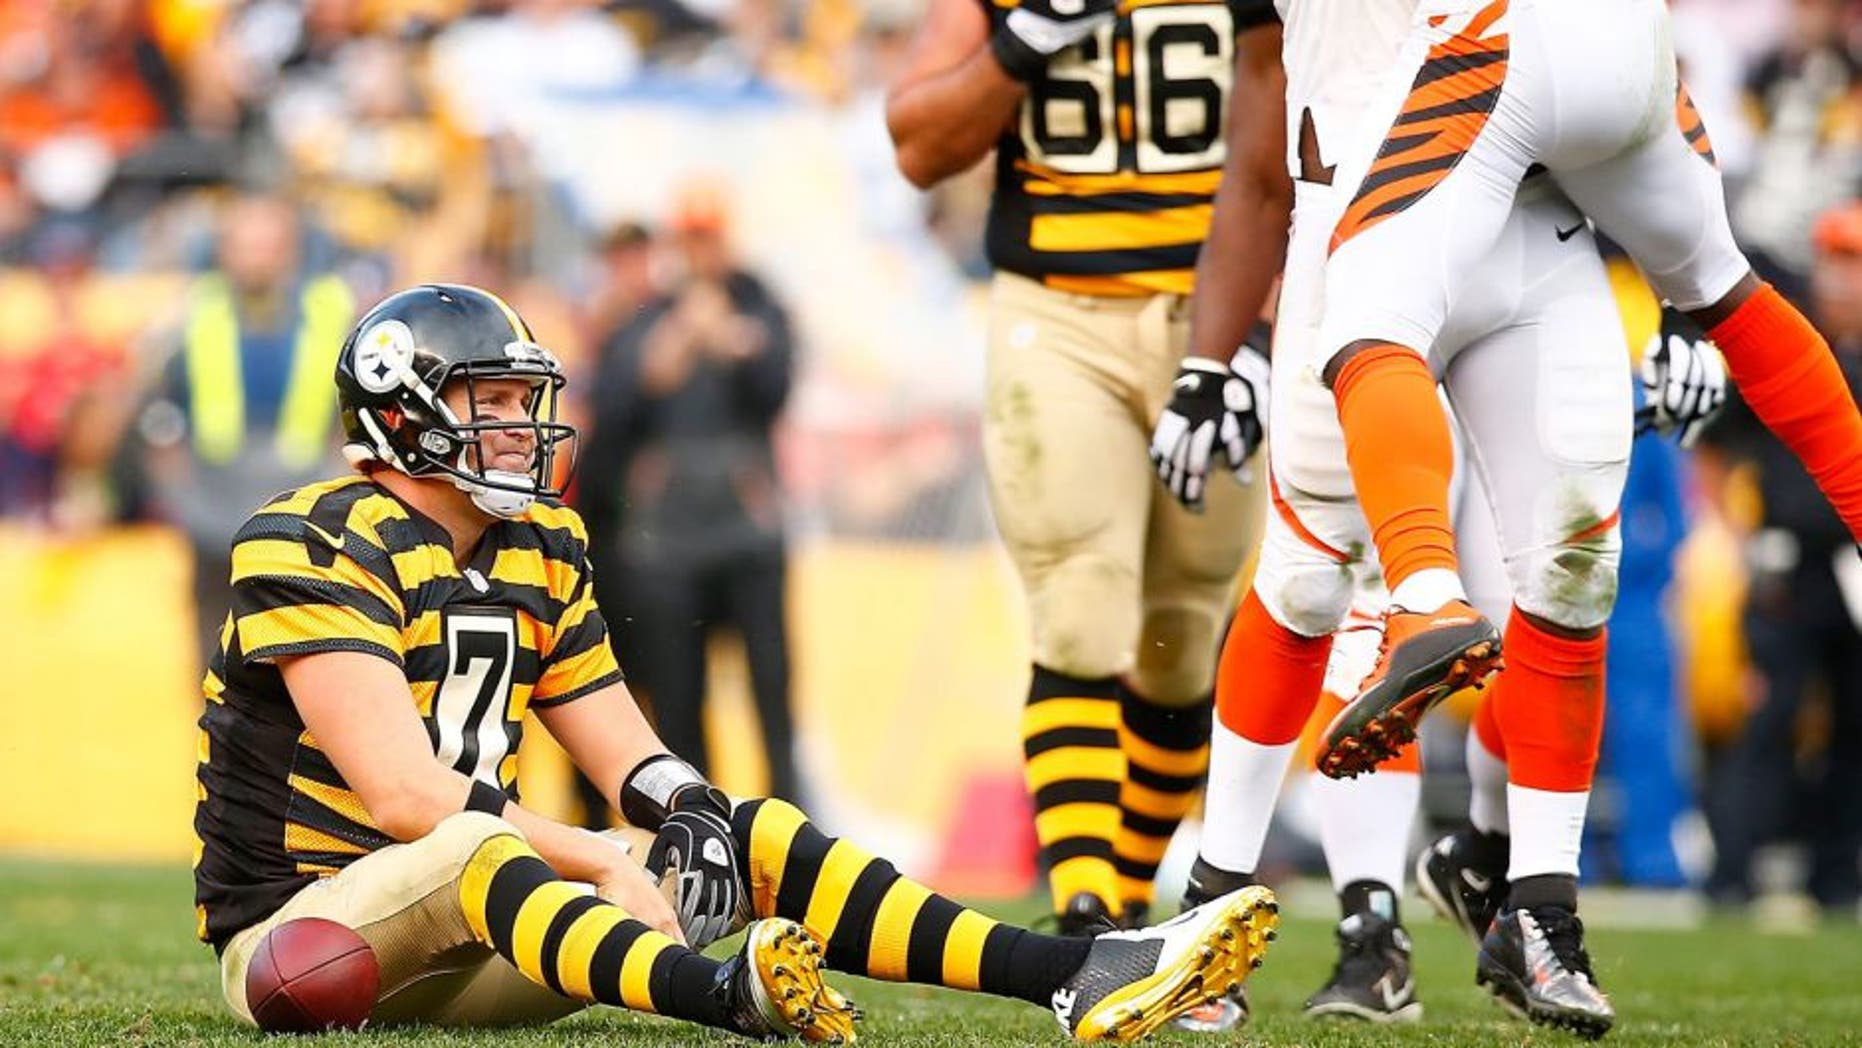 PITTSBURGH, PA - NOVEMBER 01: Ben Roethlisberger #7 of the Pittsburgh Steelers takes a moment after being tackled in the 4th quarter of the game against the Cincinnati Bengals at Heinz Field on November 1, 2015 in Pittsburgh, Pennsylvania. (Photo by Jared Wickerham/Getty Images)